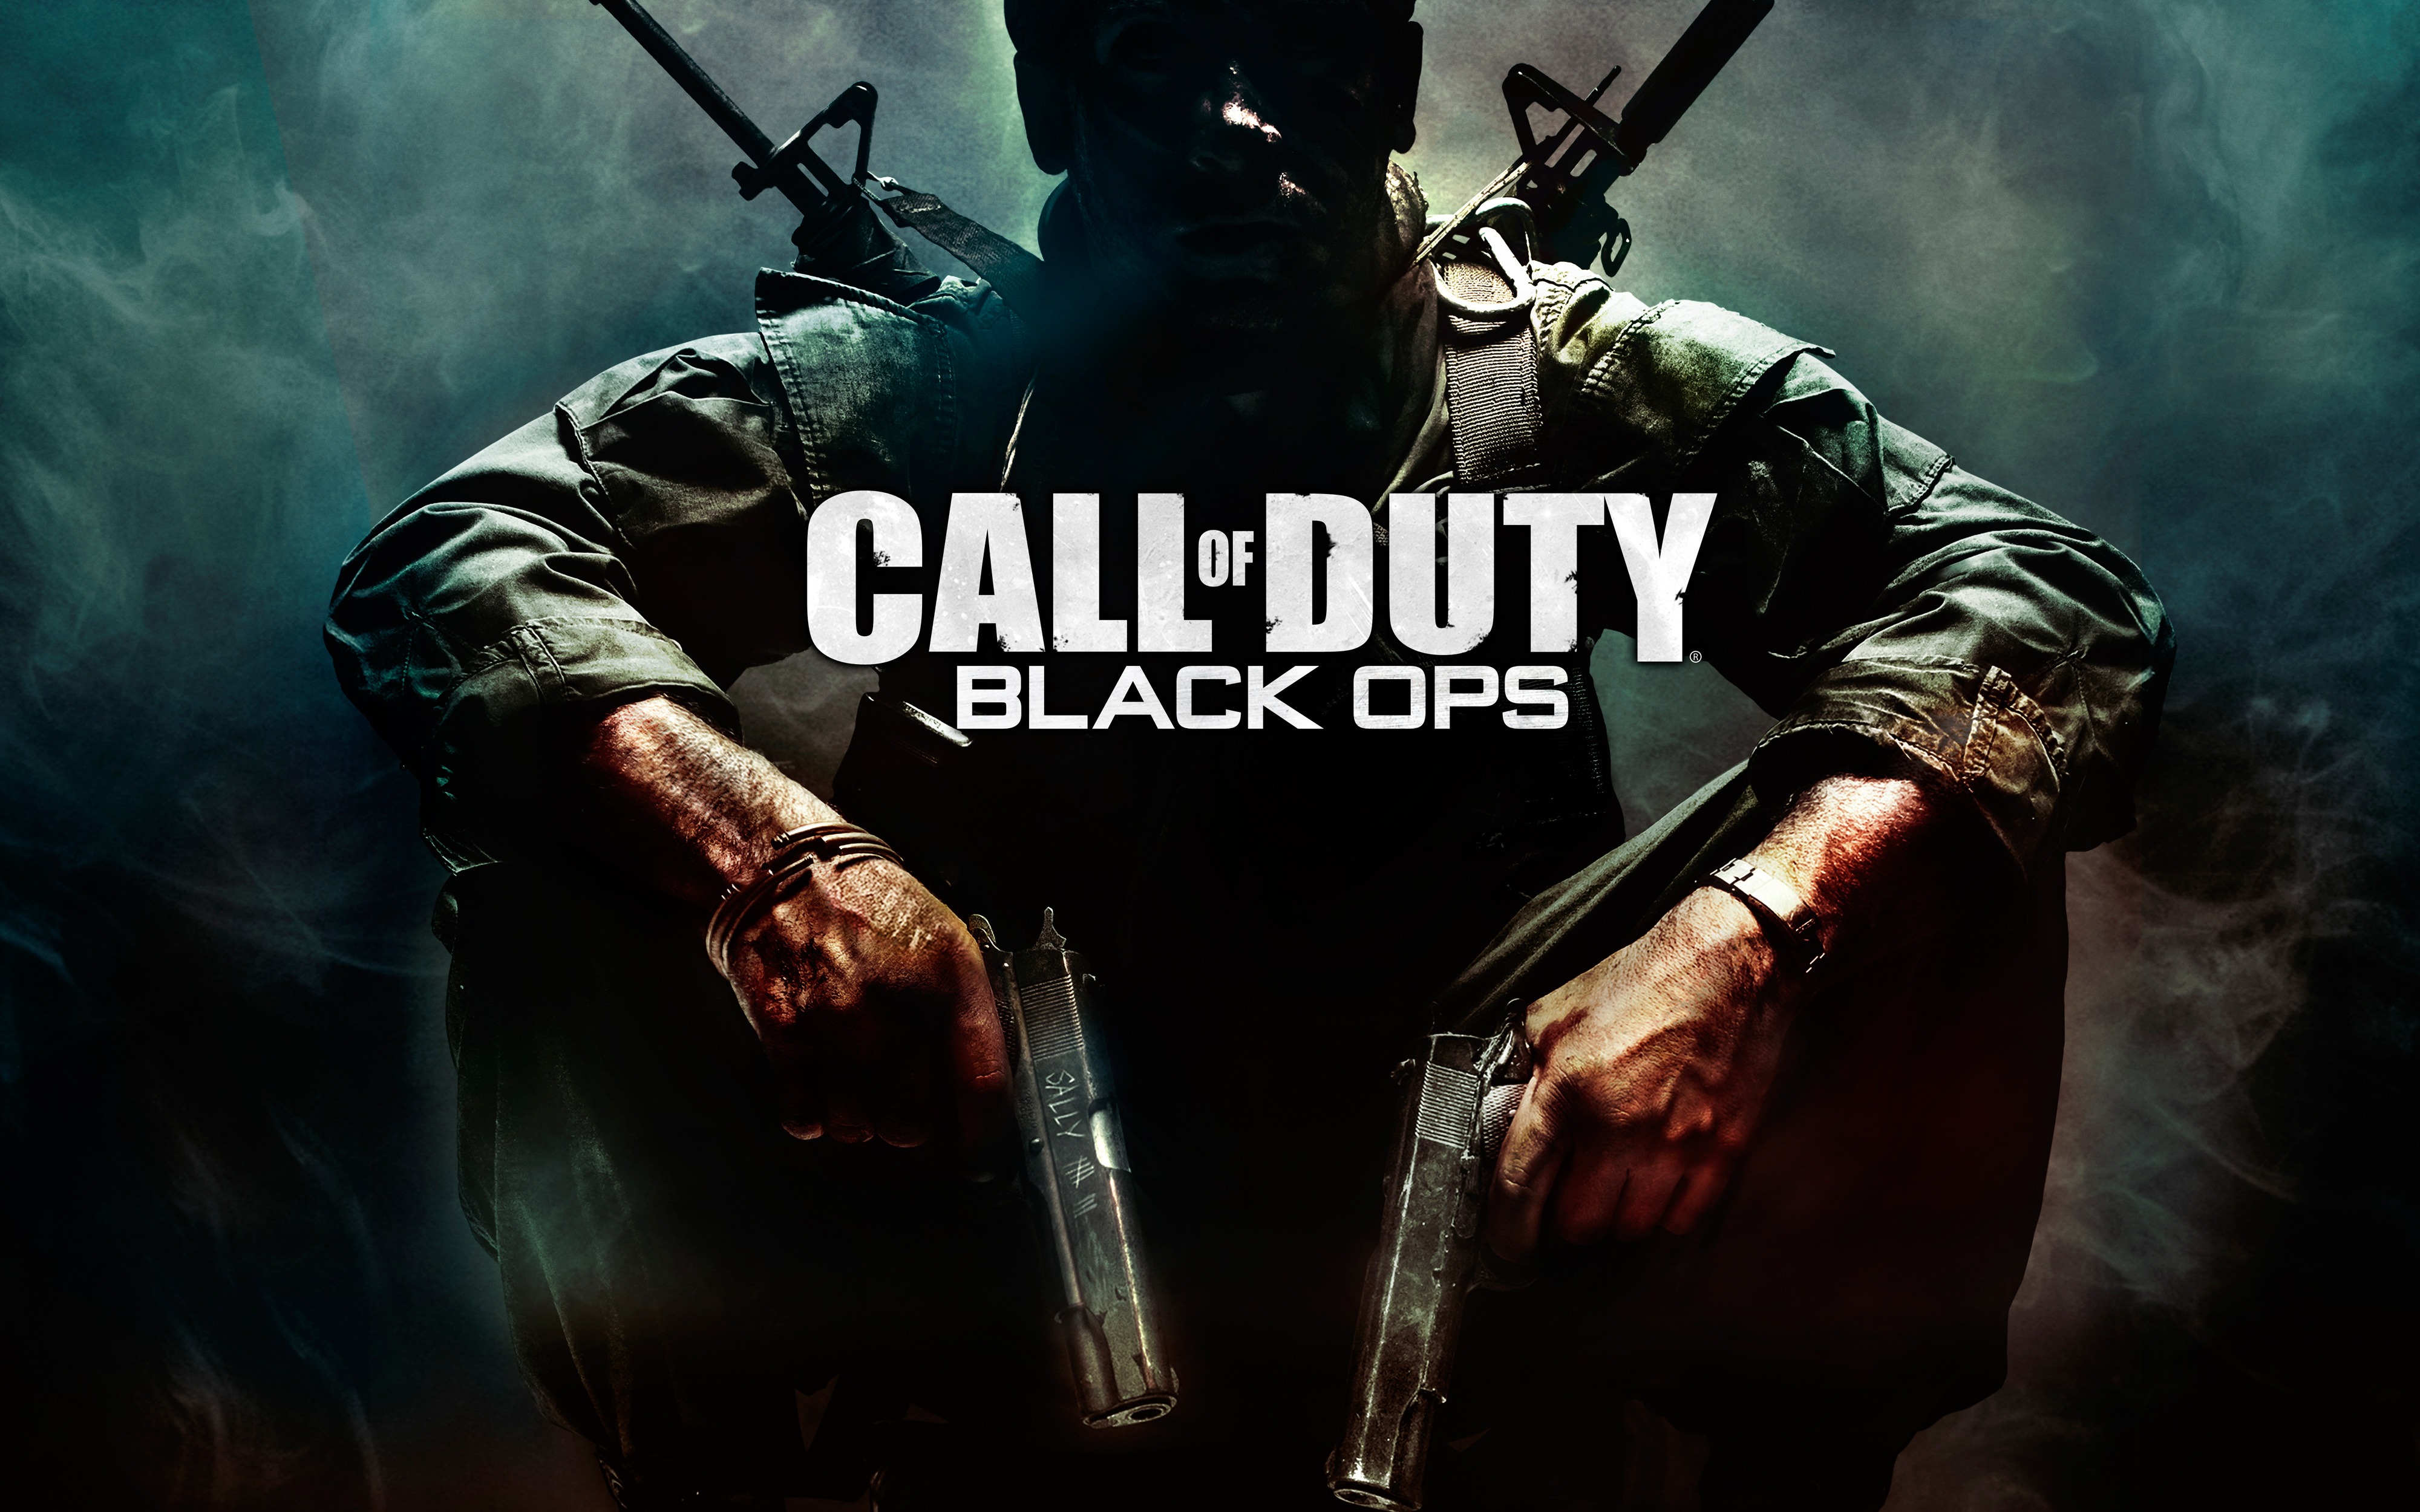 Call-of-Duty-Wallpaper-Desktop_7